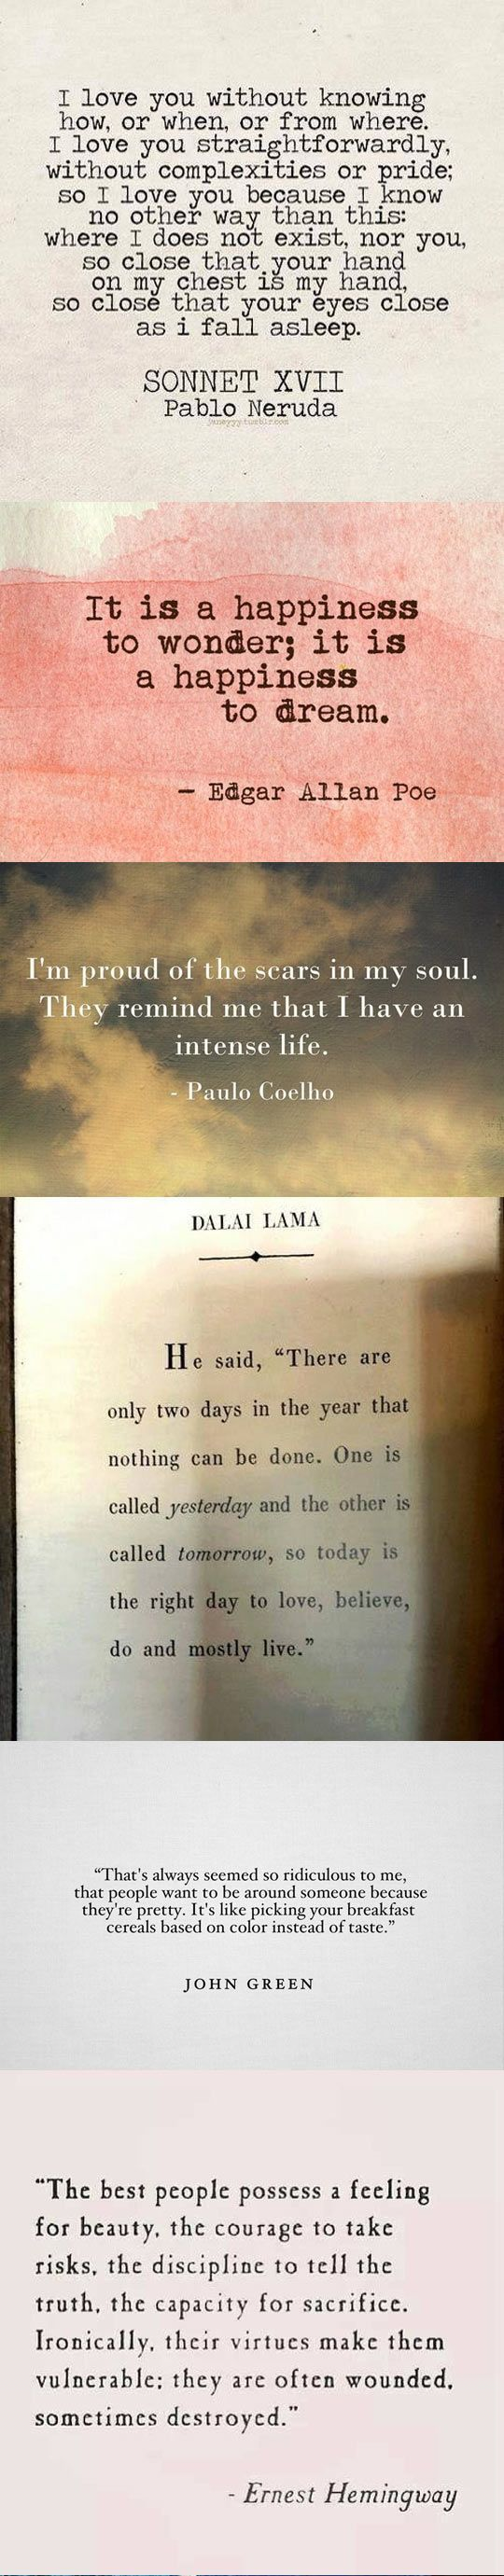 Some beautiful quotes to get through the day… Ilham